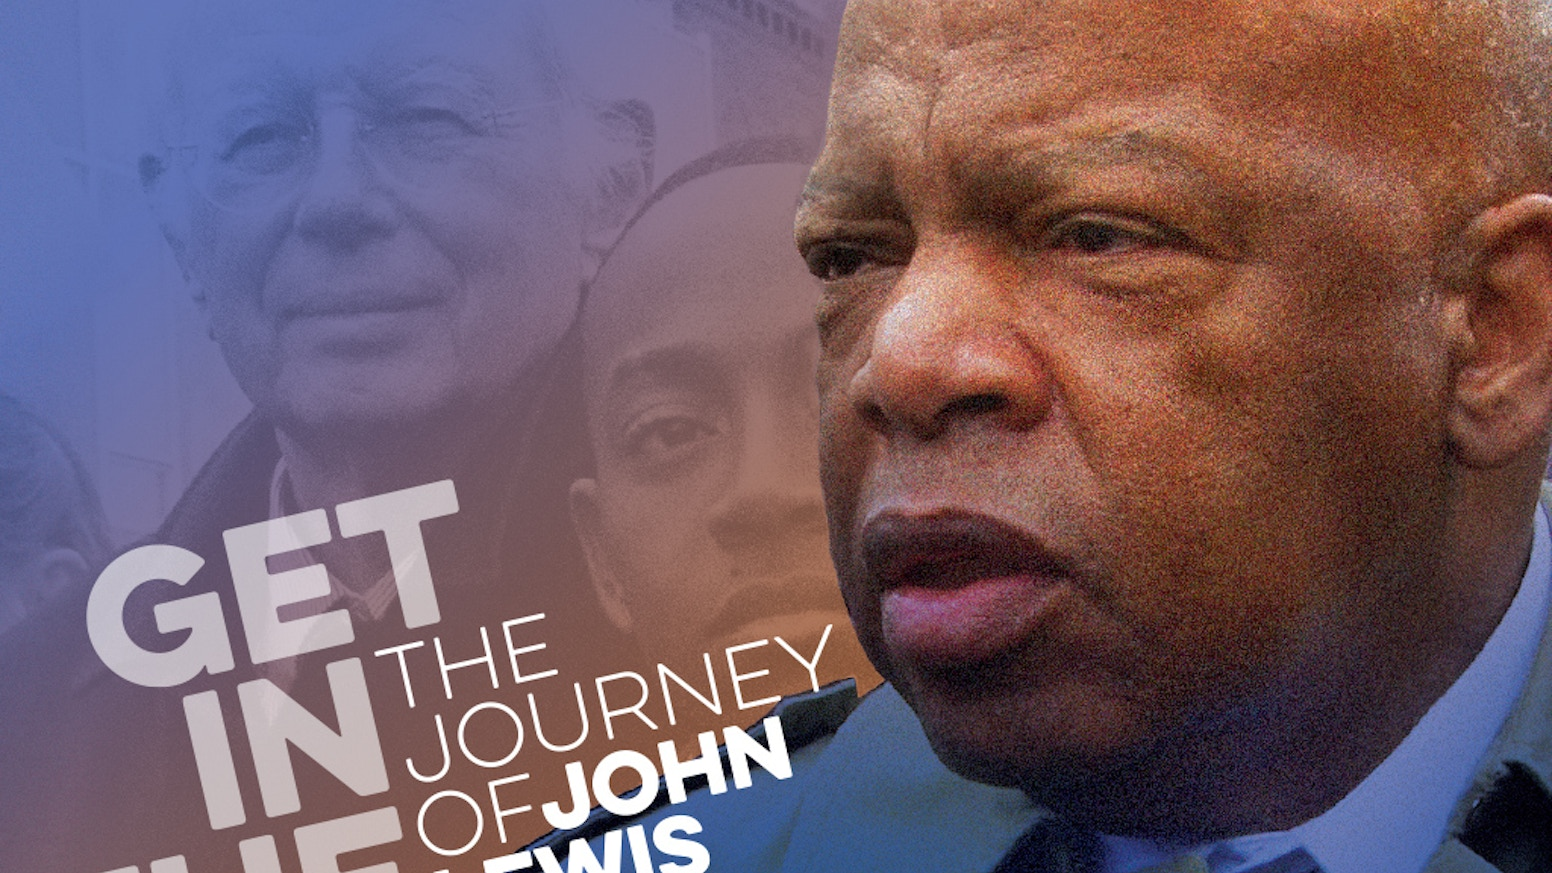 Get In The Way The Journey Of John Lewis By Kathleen Dowdey